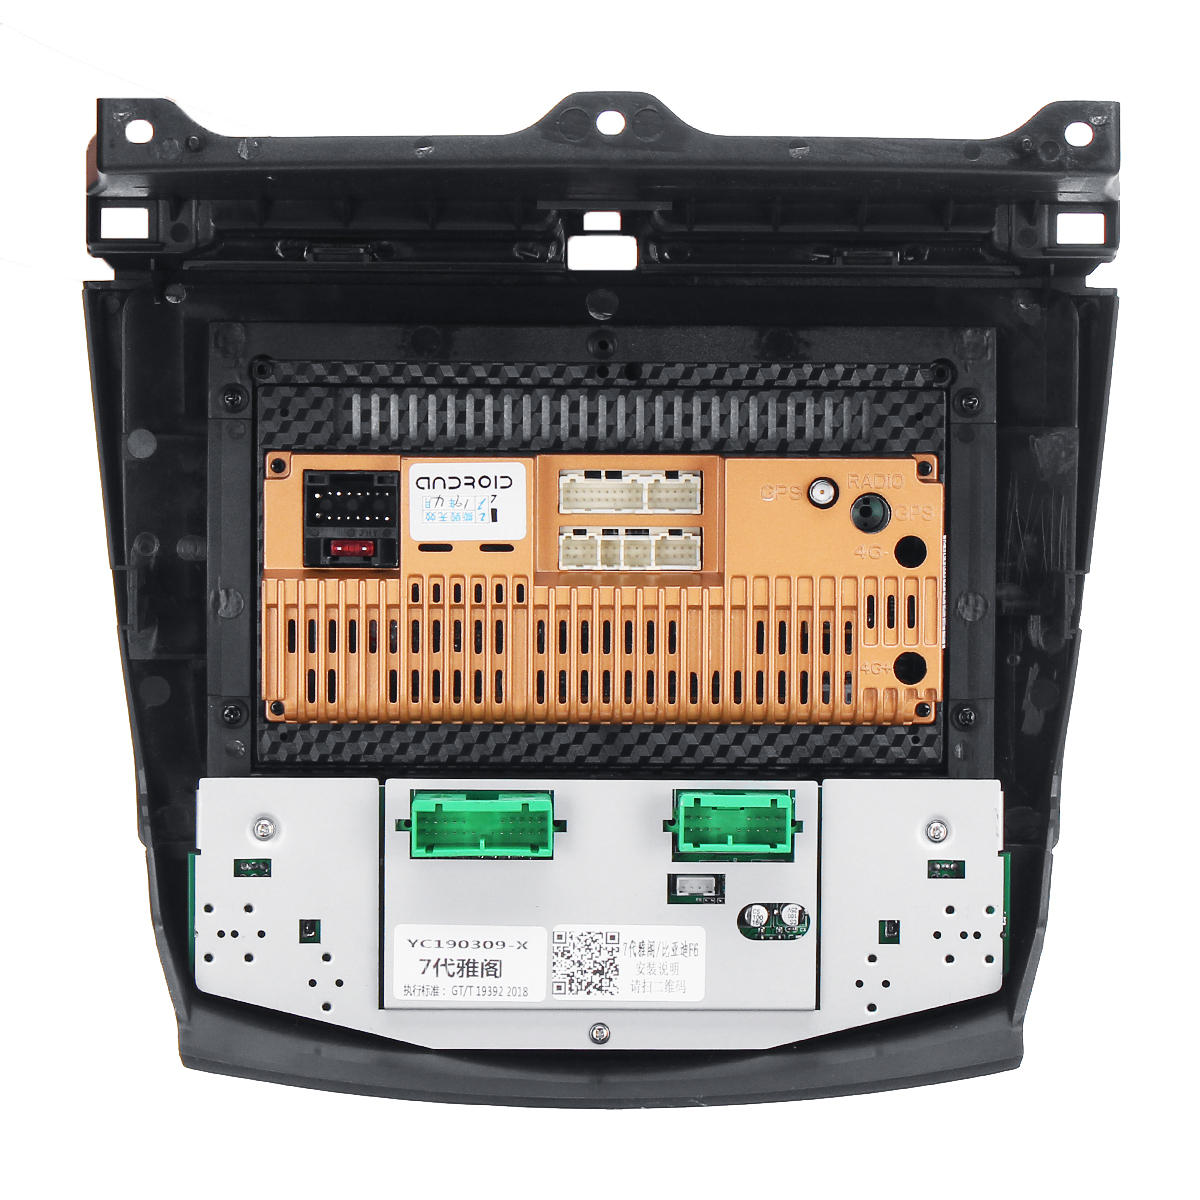 YUEHOO 10.1 Inch 2 DIN for Android 8.0カーステレオ2 + 32GクアッドコアMP5プレーヤーGPS WIFI 4G AM RDS Radio for Honda Accord 2003-2007